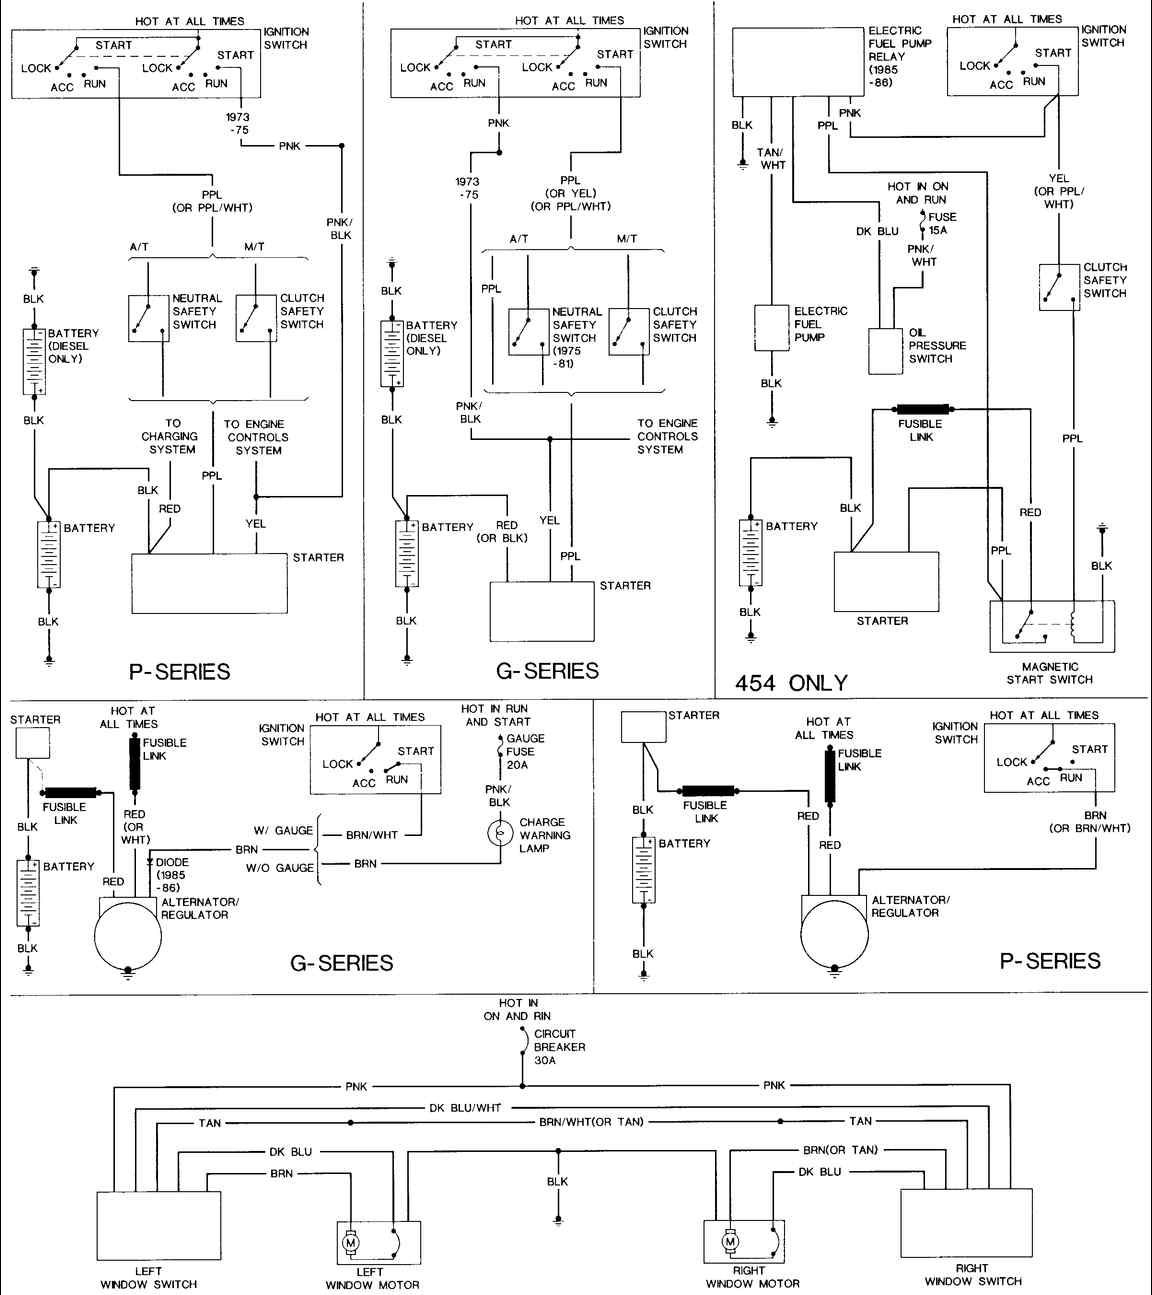 Kz1000 Wiring Diagram Bare Bones | Wiring Liry on gy6 kill switch, gy6 exhaust, 150cc scooter engine diagram, gy6 engine, gy6 wiring harness, tao tao scooter parts diagram, howhit 150 wire diagram,